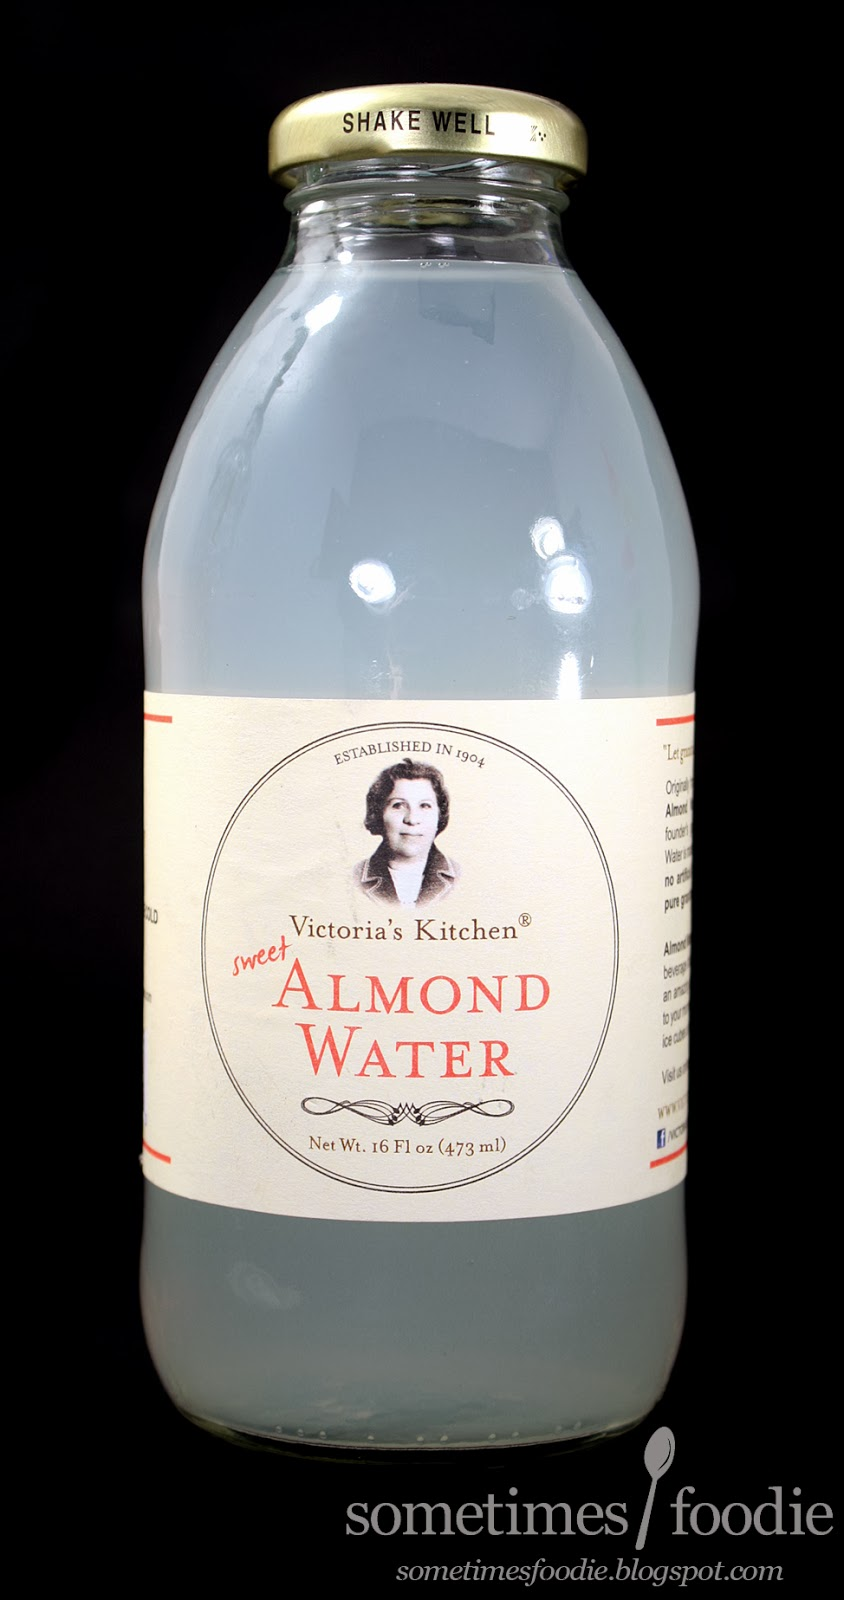 victorias kitchen sweet almond water whole foods mt laurel nj - Victorias Kitchen Almond Water